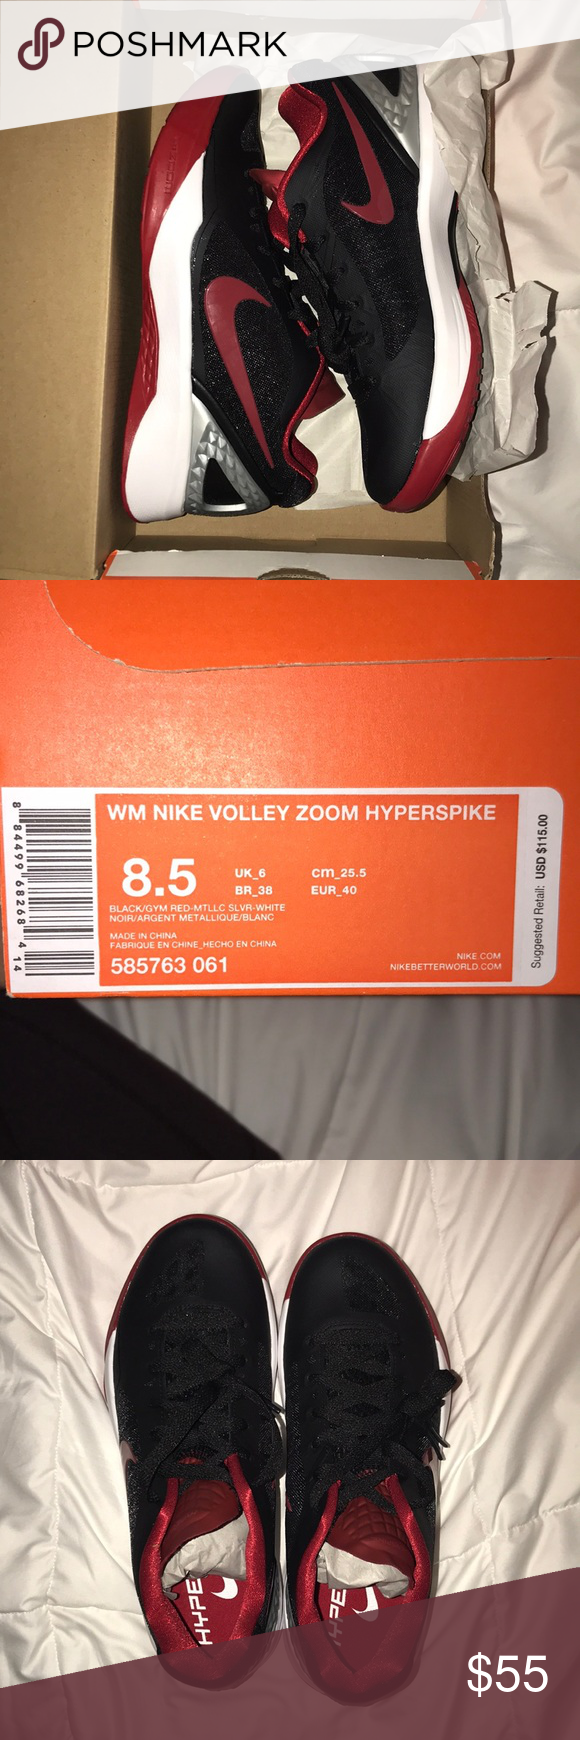 d568d0d89823 Nike Volleyball Shoes - Zoom Hyperspike 8.5 Size 8.5 New with box. Never  been worn and in perfect condition. Nike Shoes Athletic Shoes